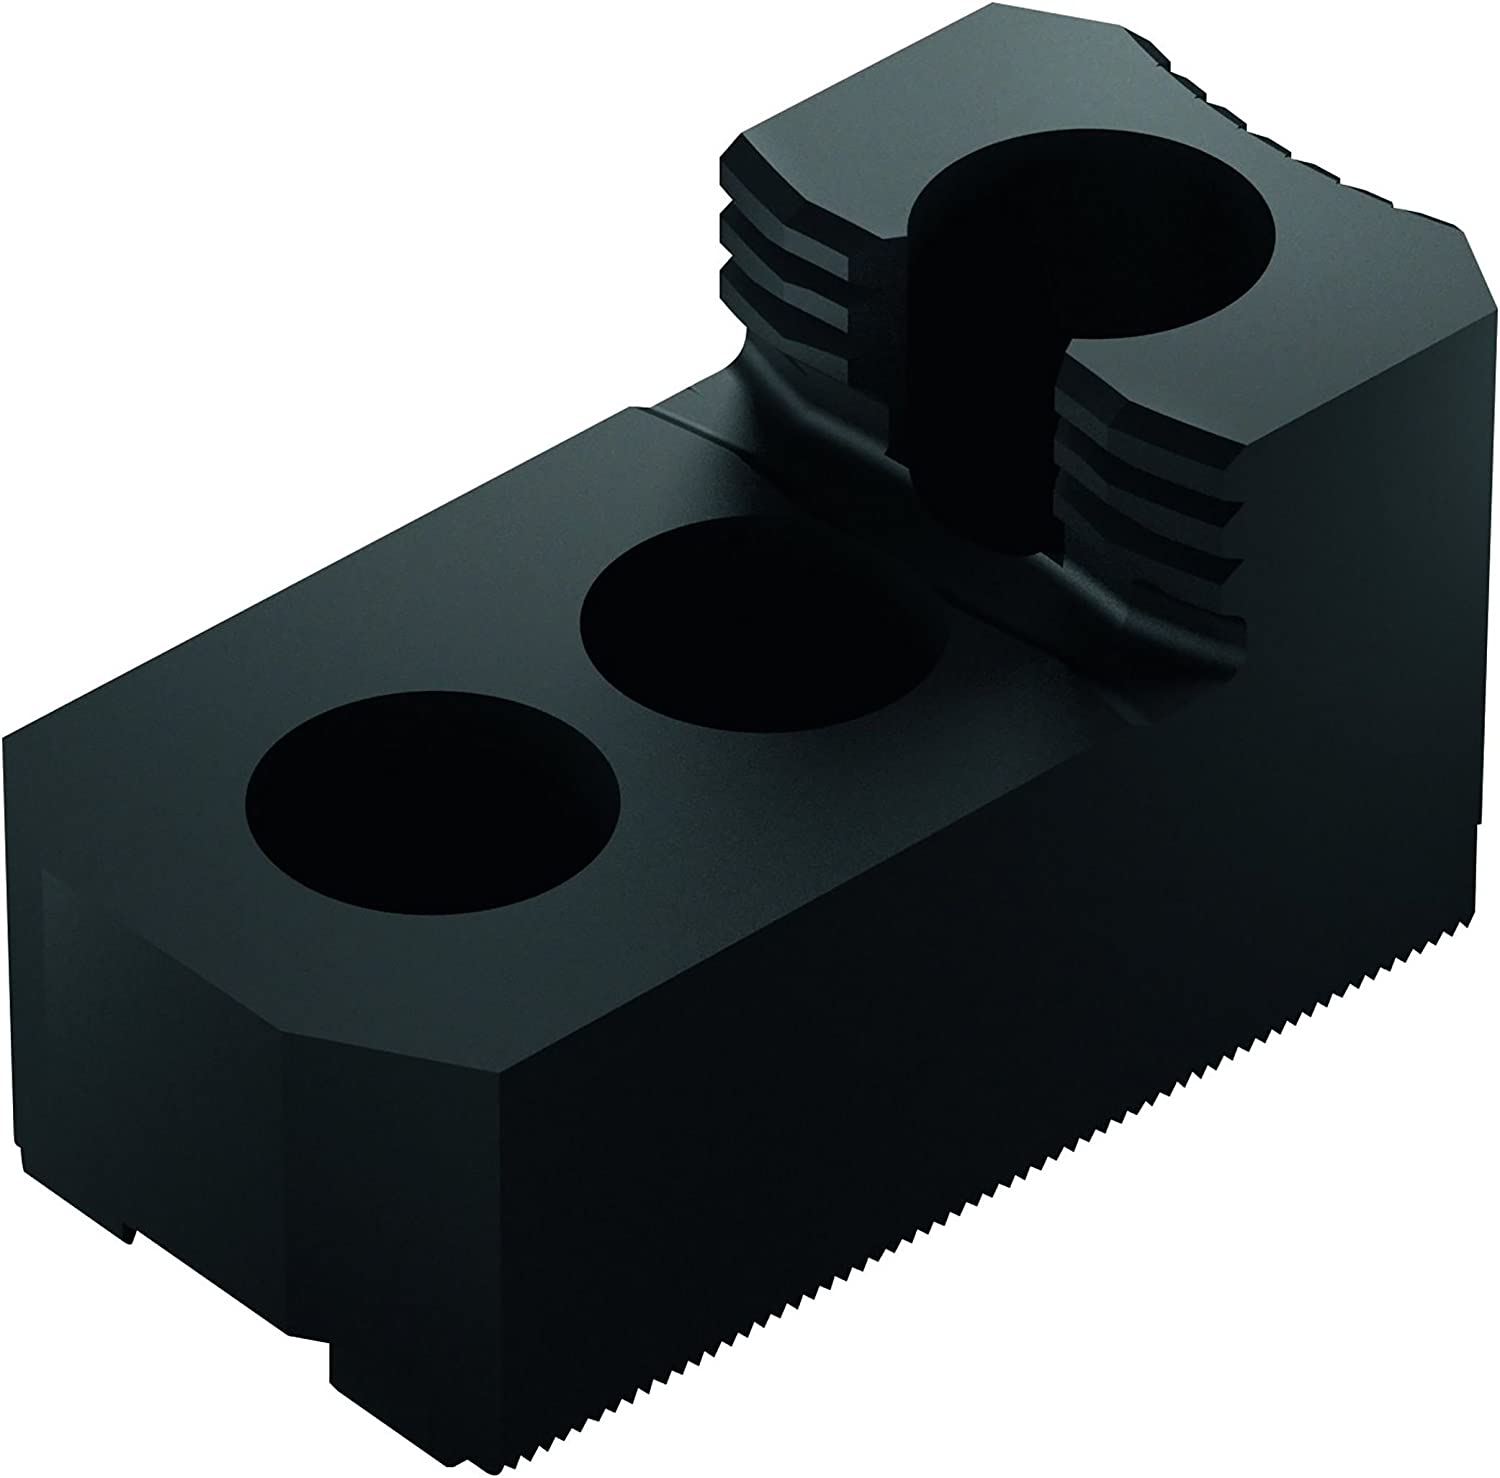 Pack of 3 12 mm Groove Width 28 mm x 36 mm x 67 mm 1.5 mm x 60 Degree SCHUNK 0133100 Steel Hard Stepped Top Jaws